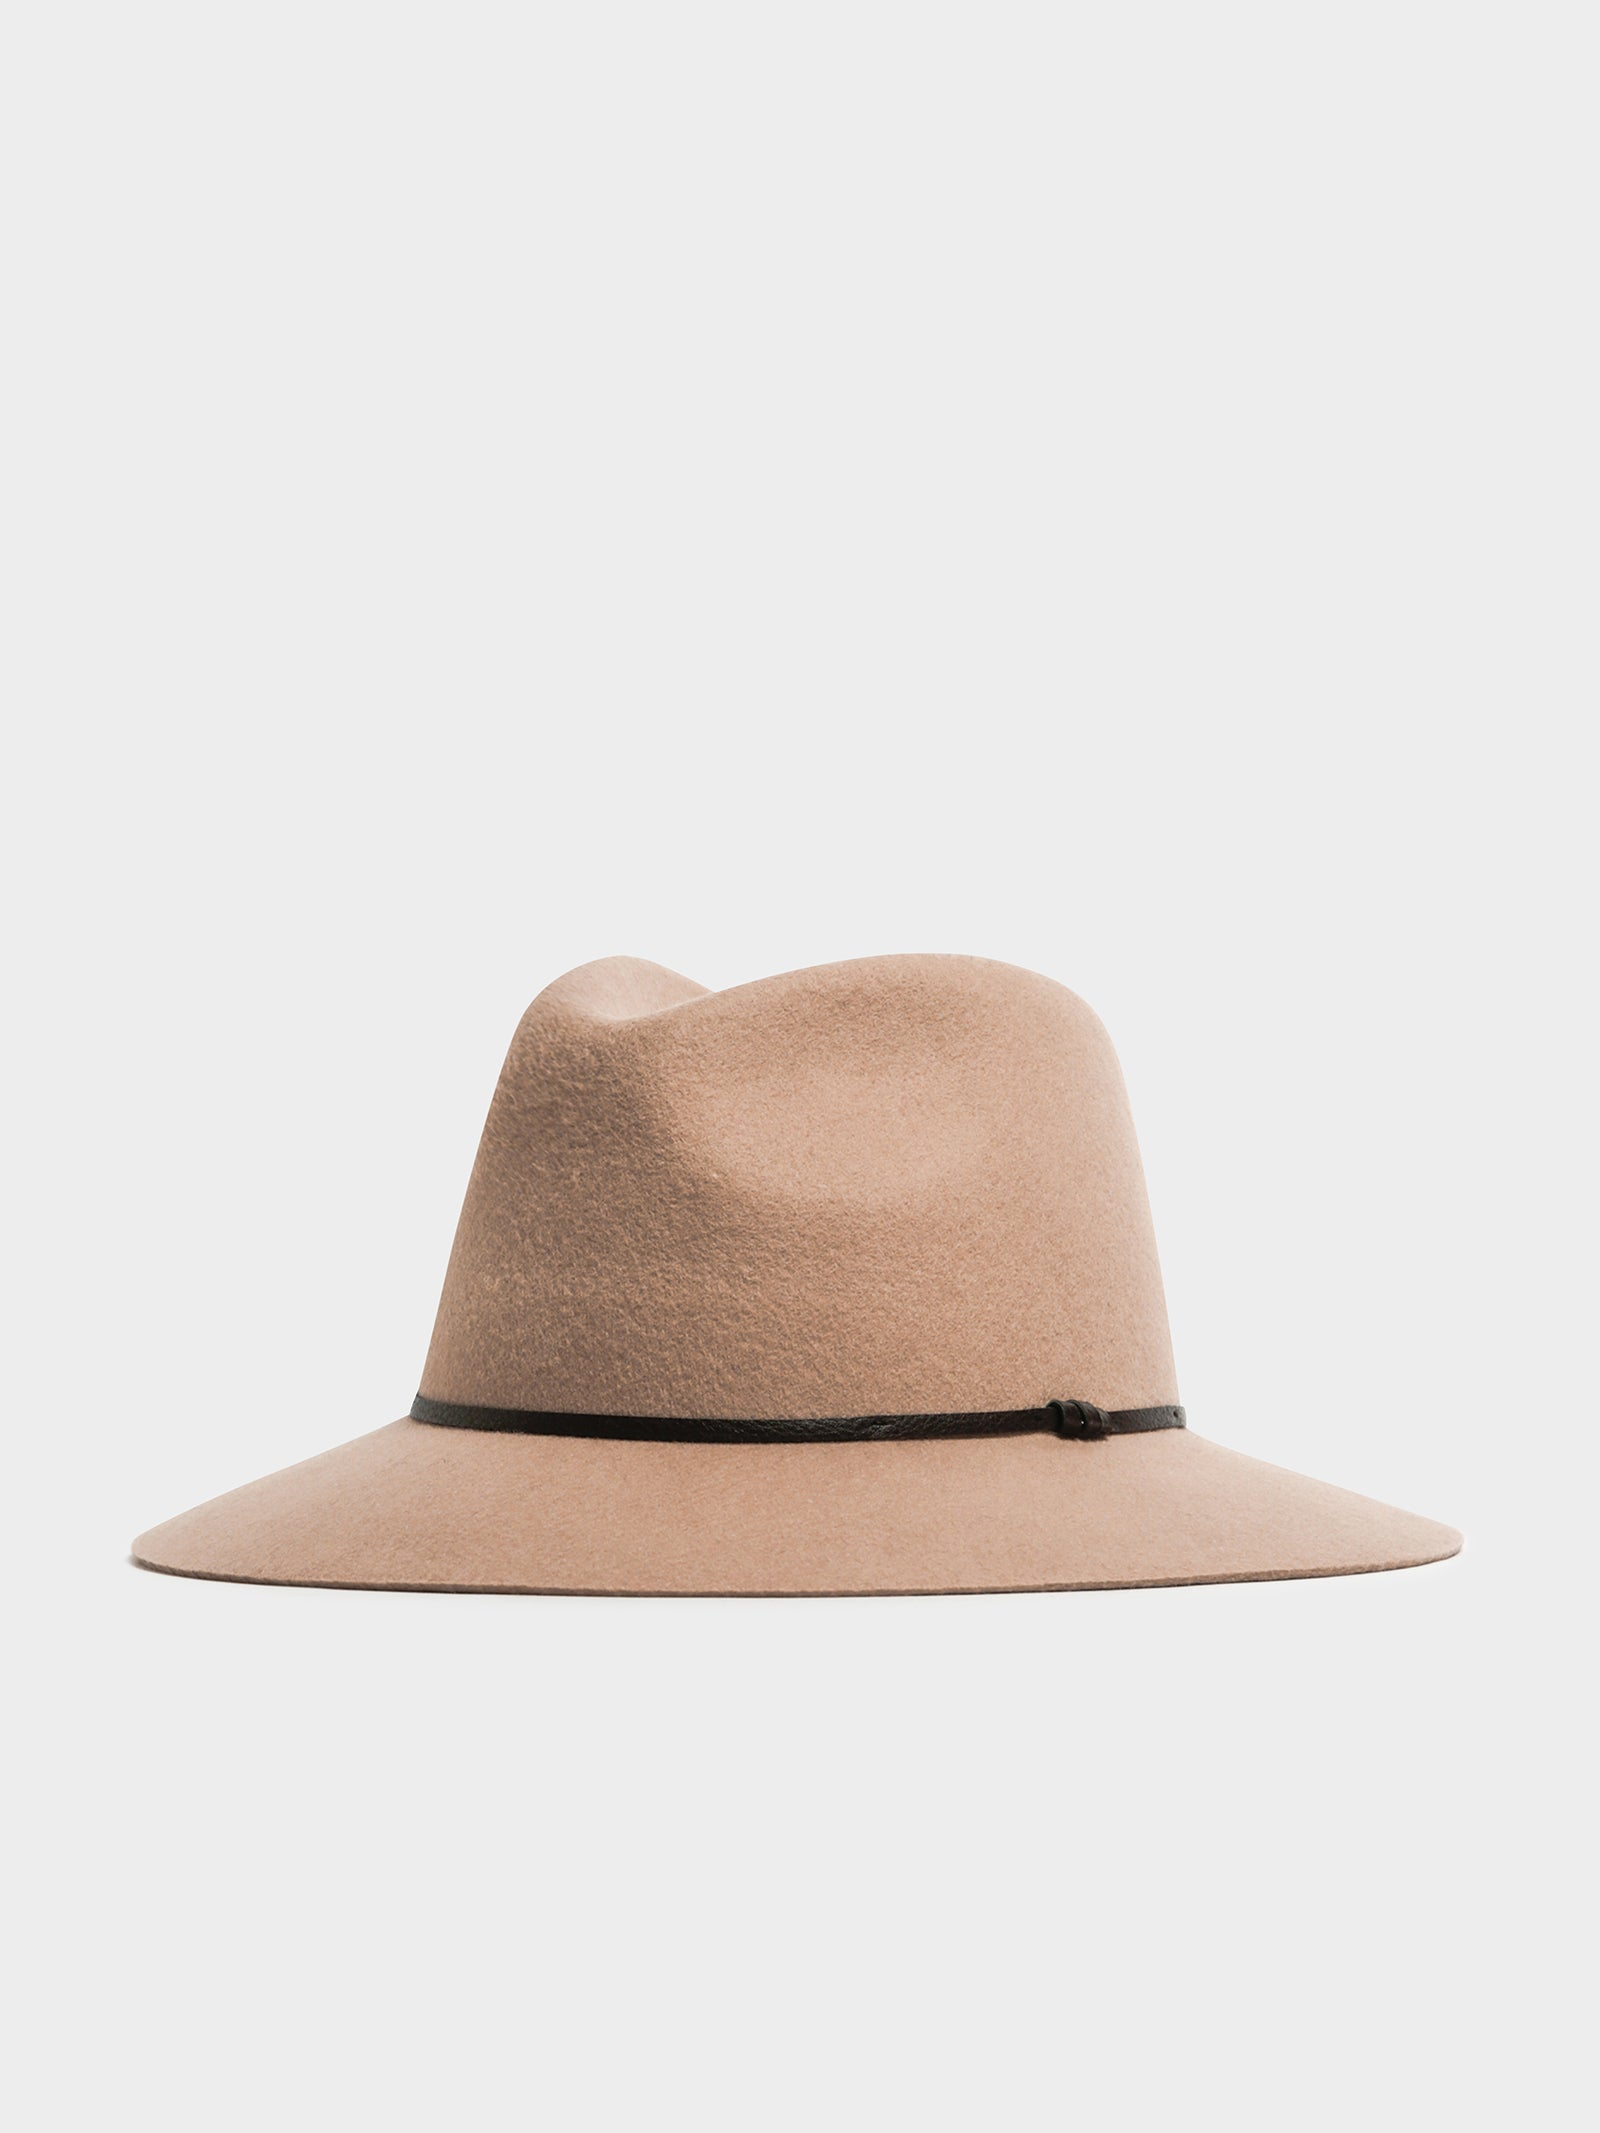 Splendour Fedora in Sand